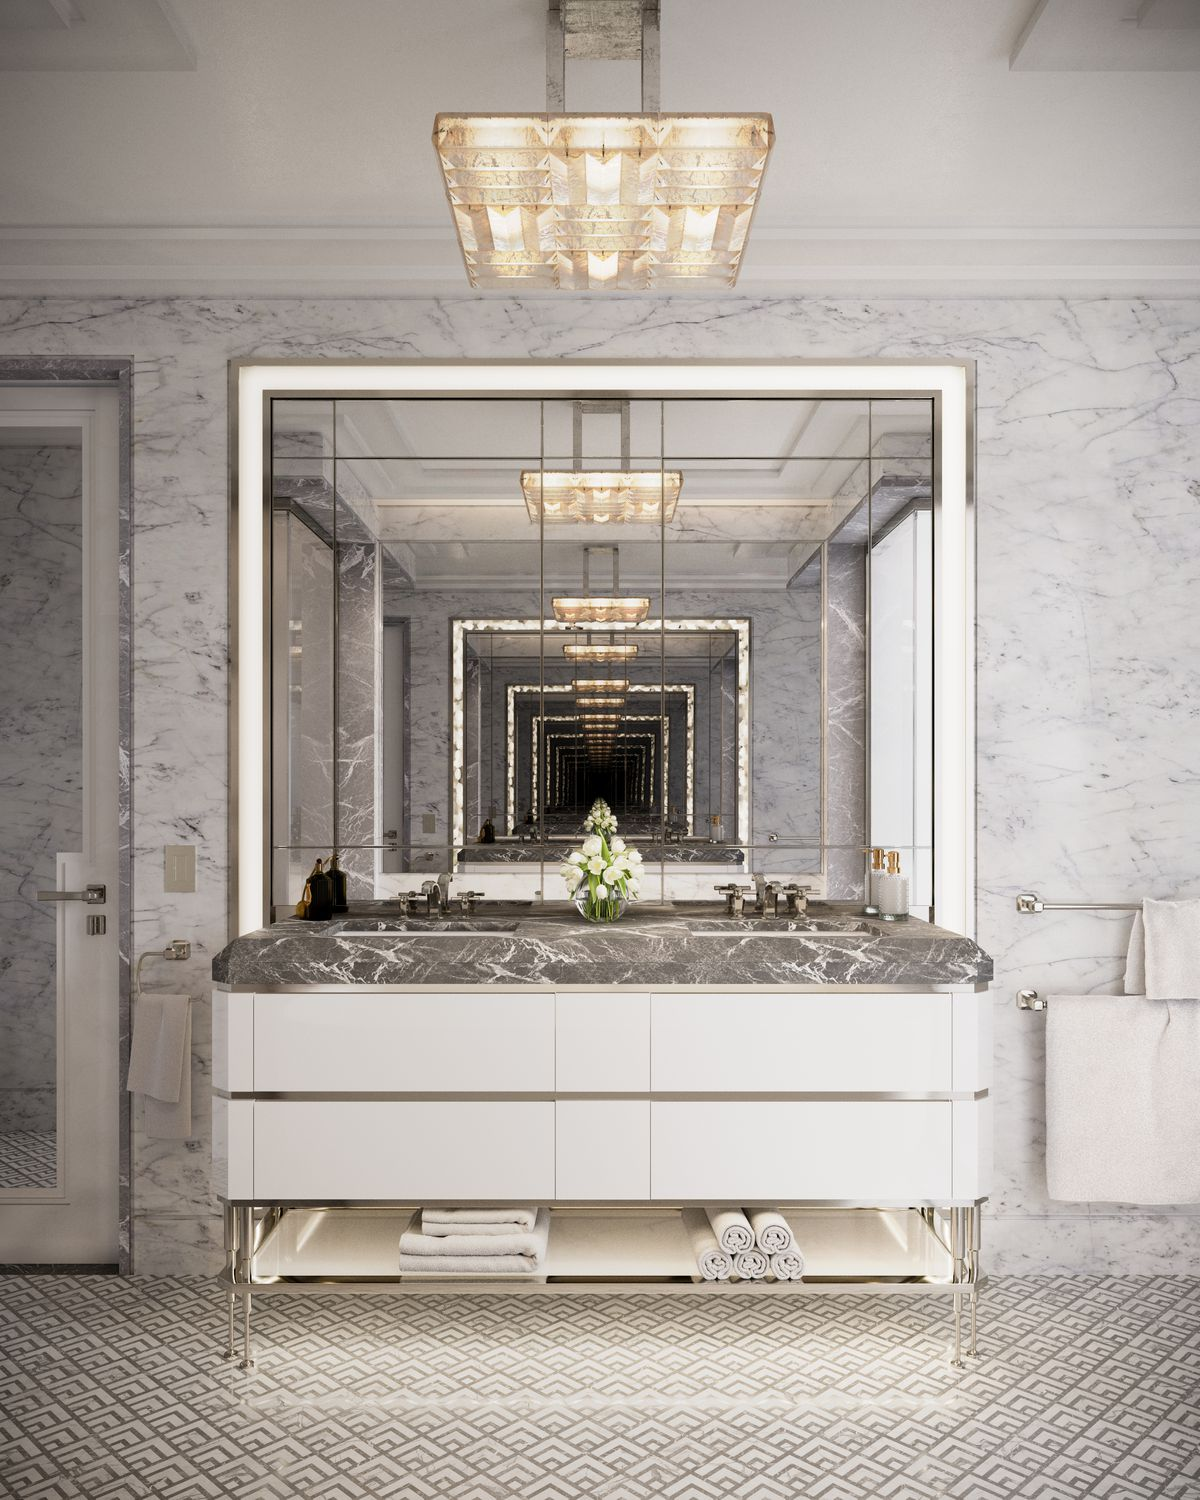 A bathroom with a large mirror and marble finishes.